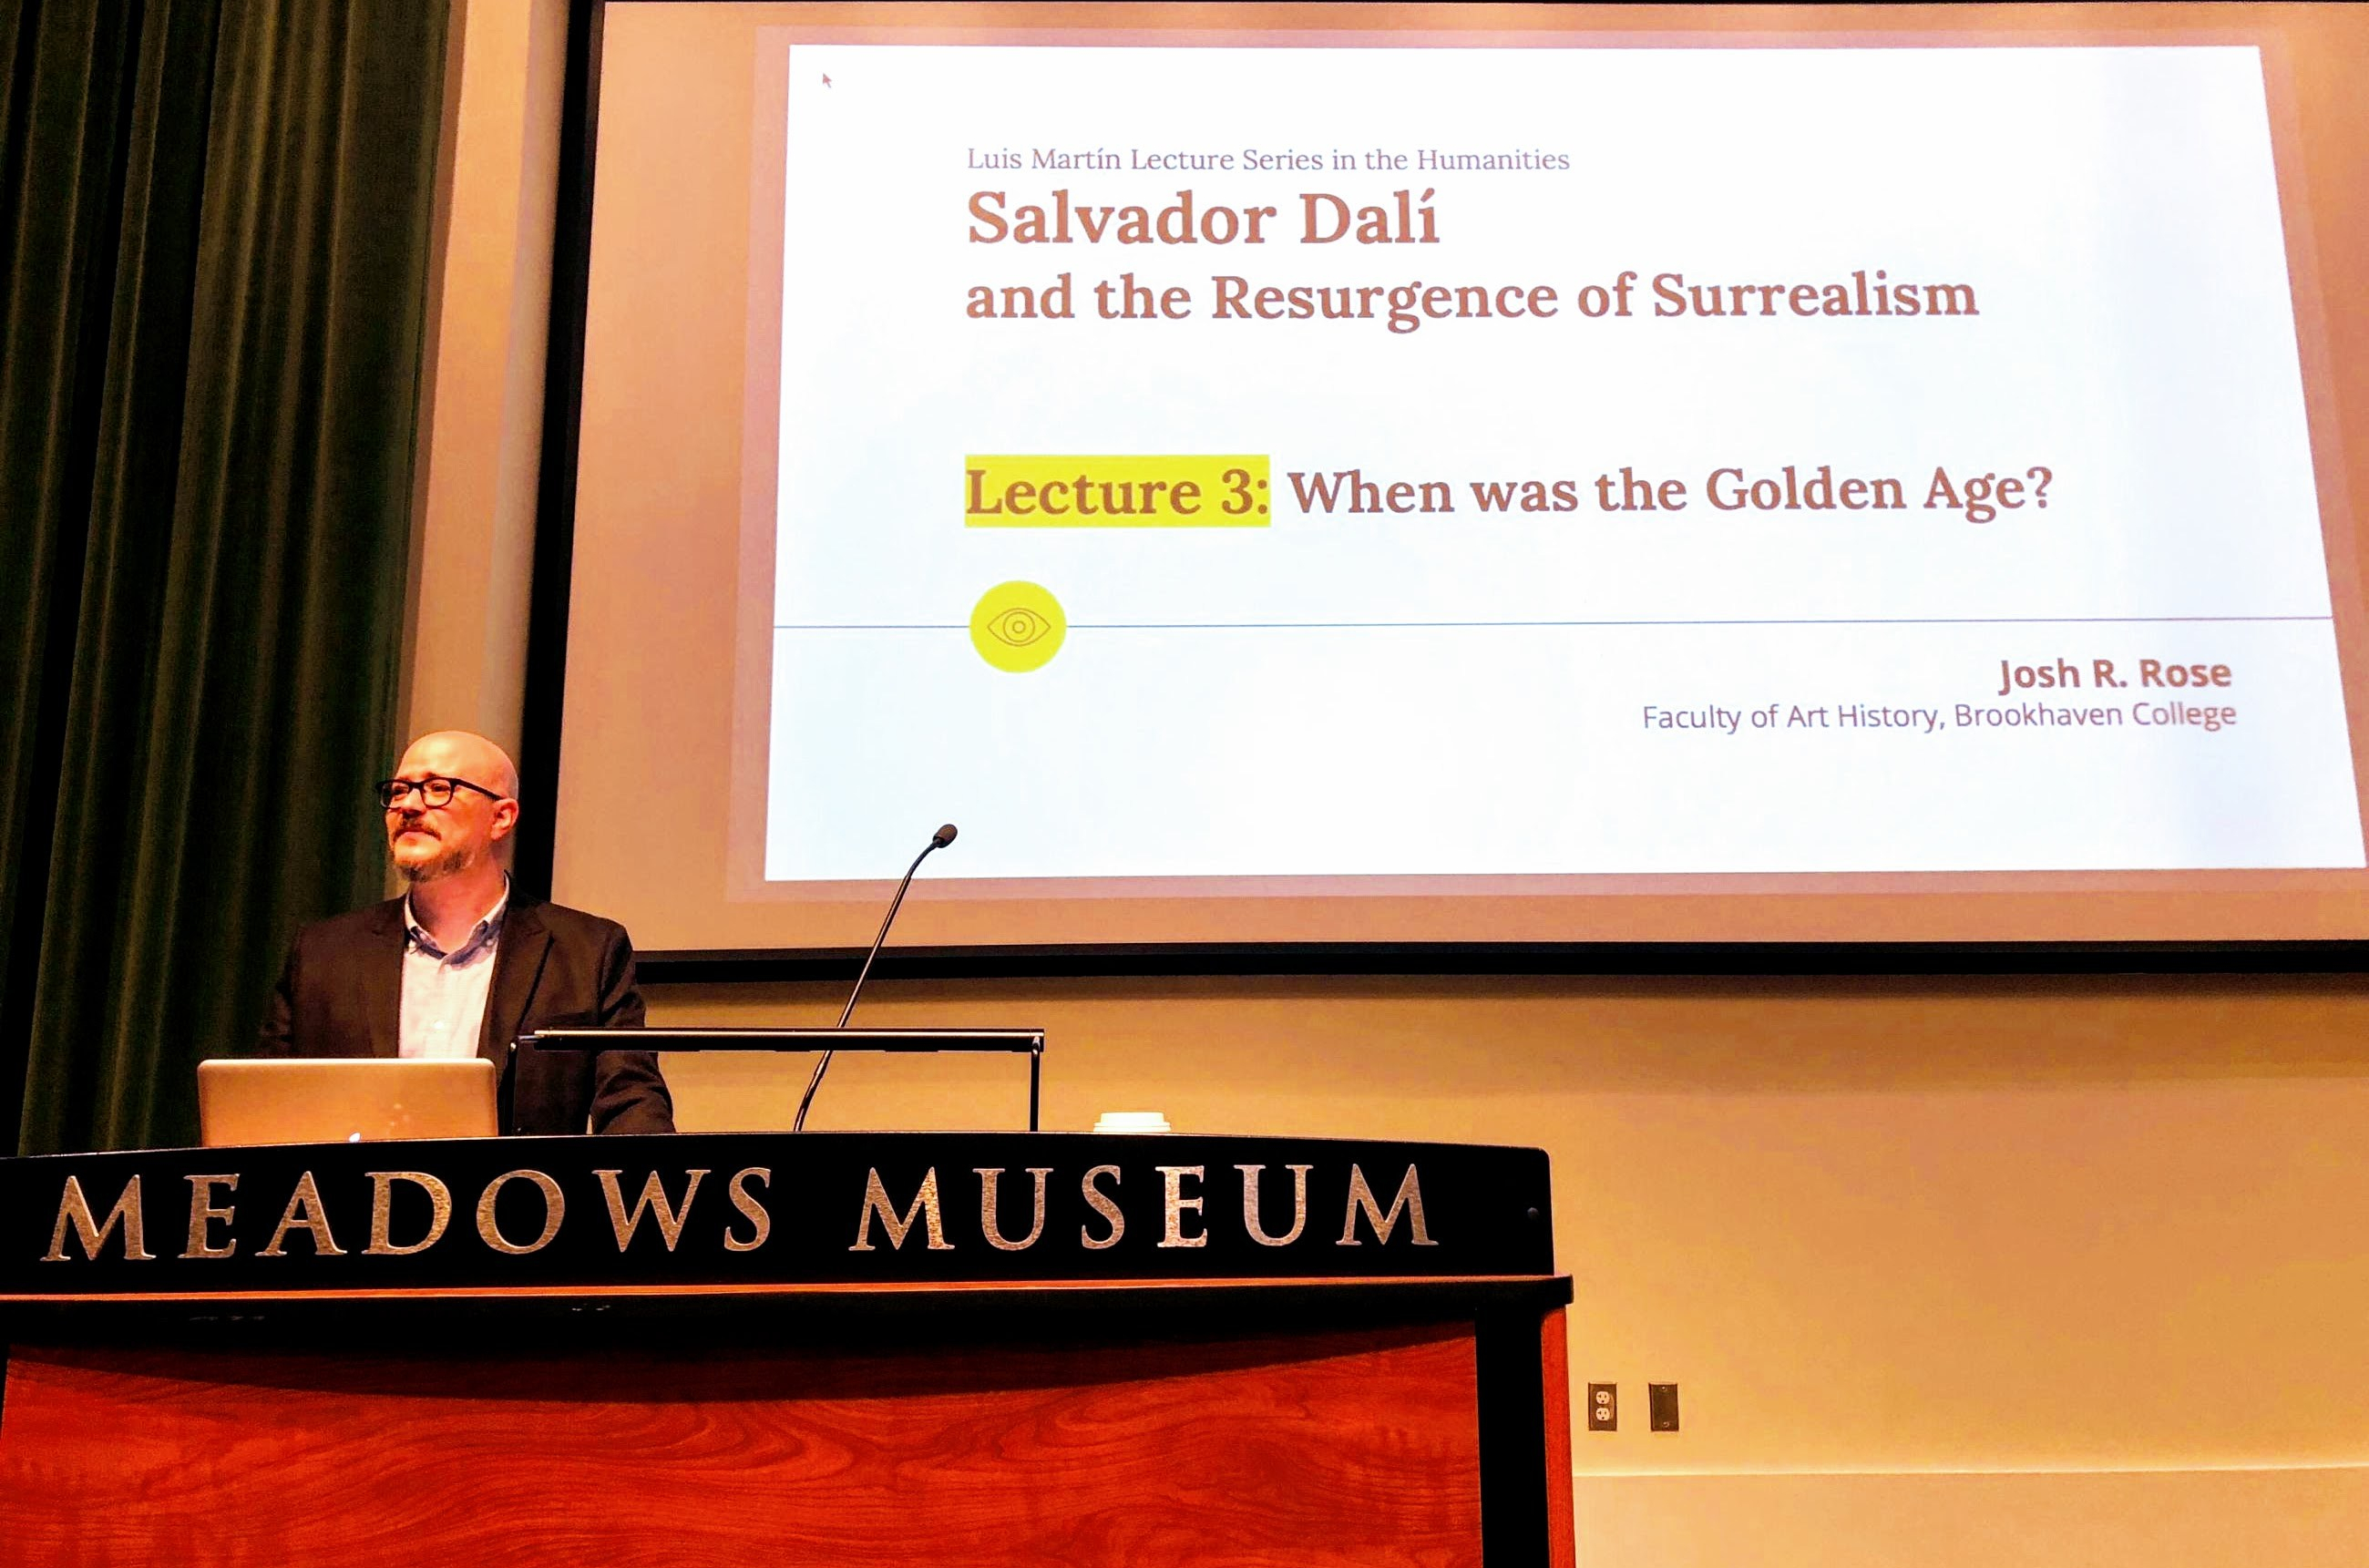 Presenting at the Meadows Museum